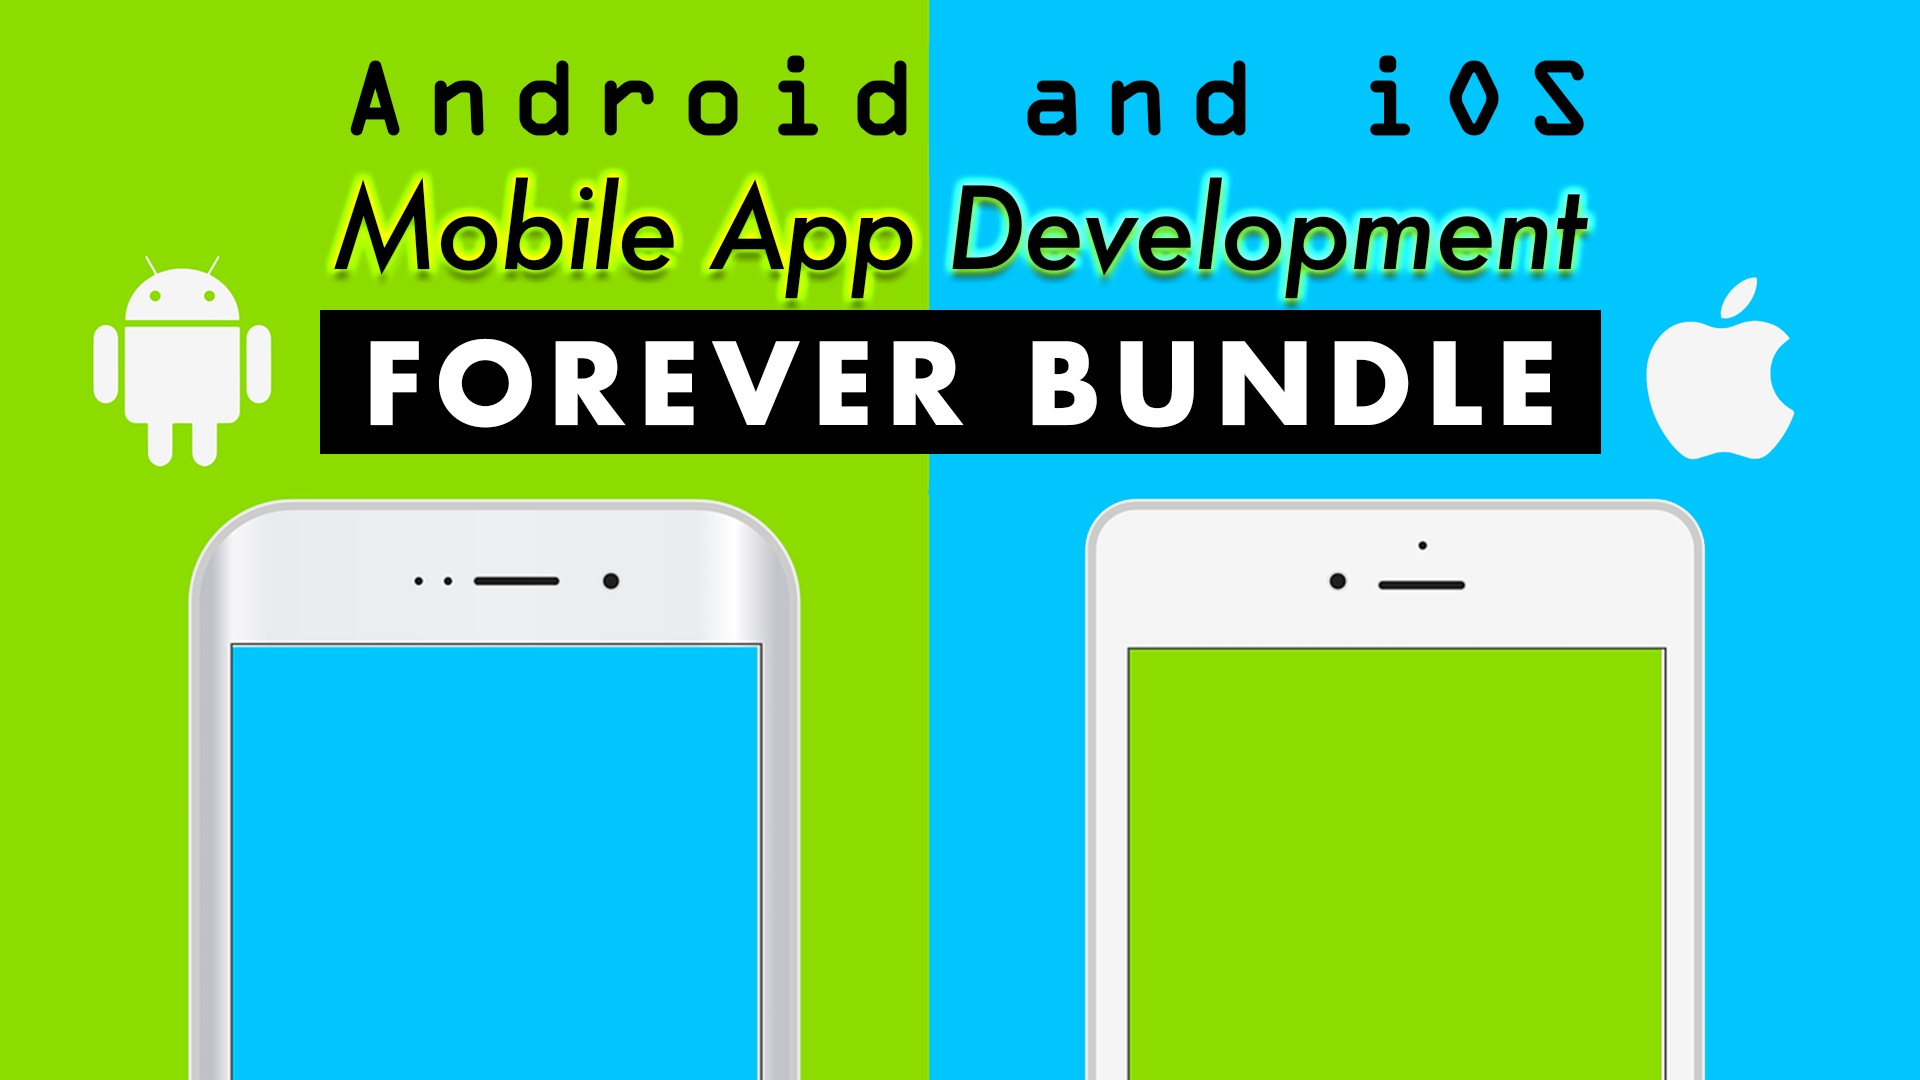 The Mobile App Developer Forever Bundle on Android and iOS!